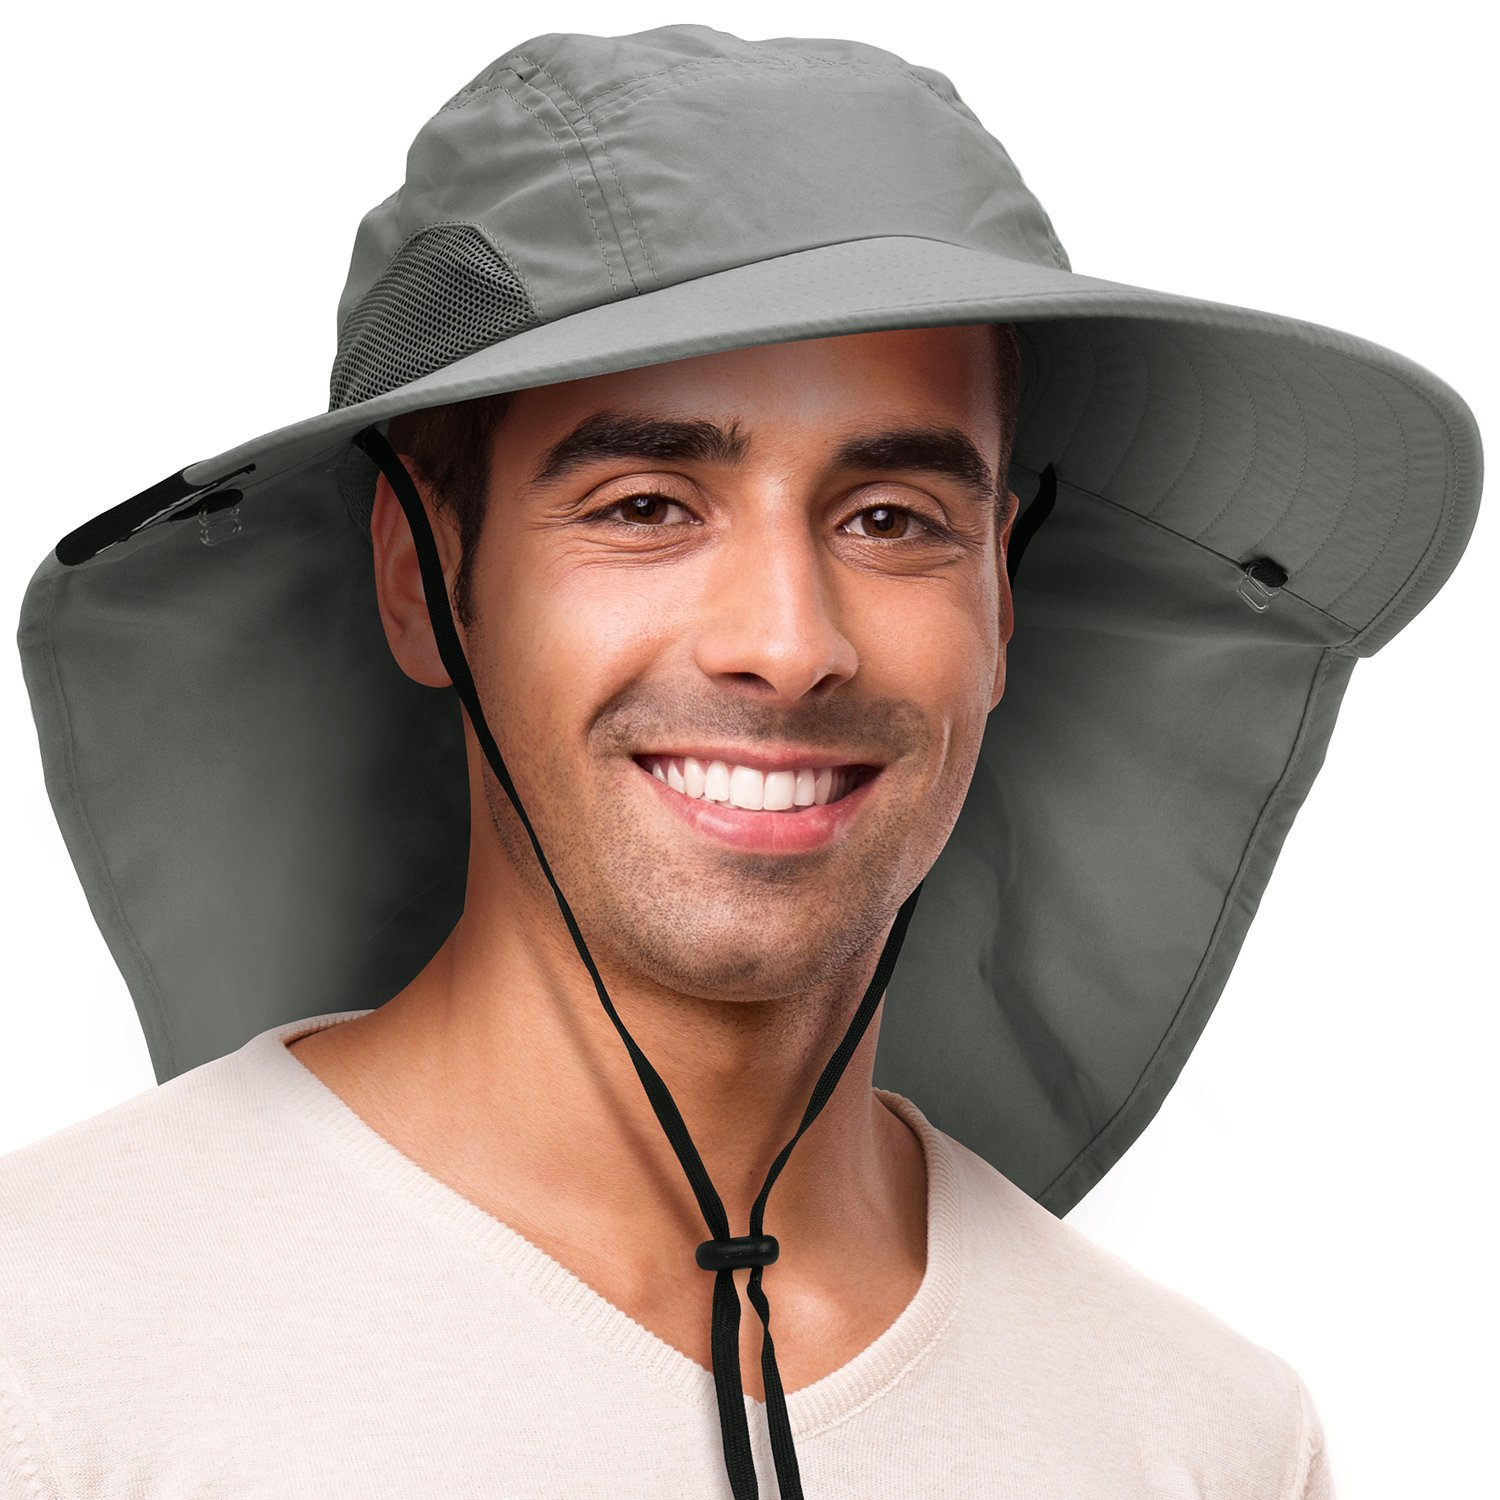 5bbc6fe7e03 Solaris Outdoor Fishing Hat with Ear Neck Flap Cover Wide Brim Sun  Protection Safari Cap for